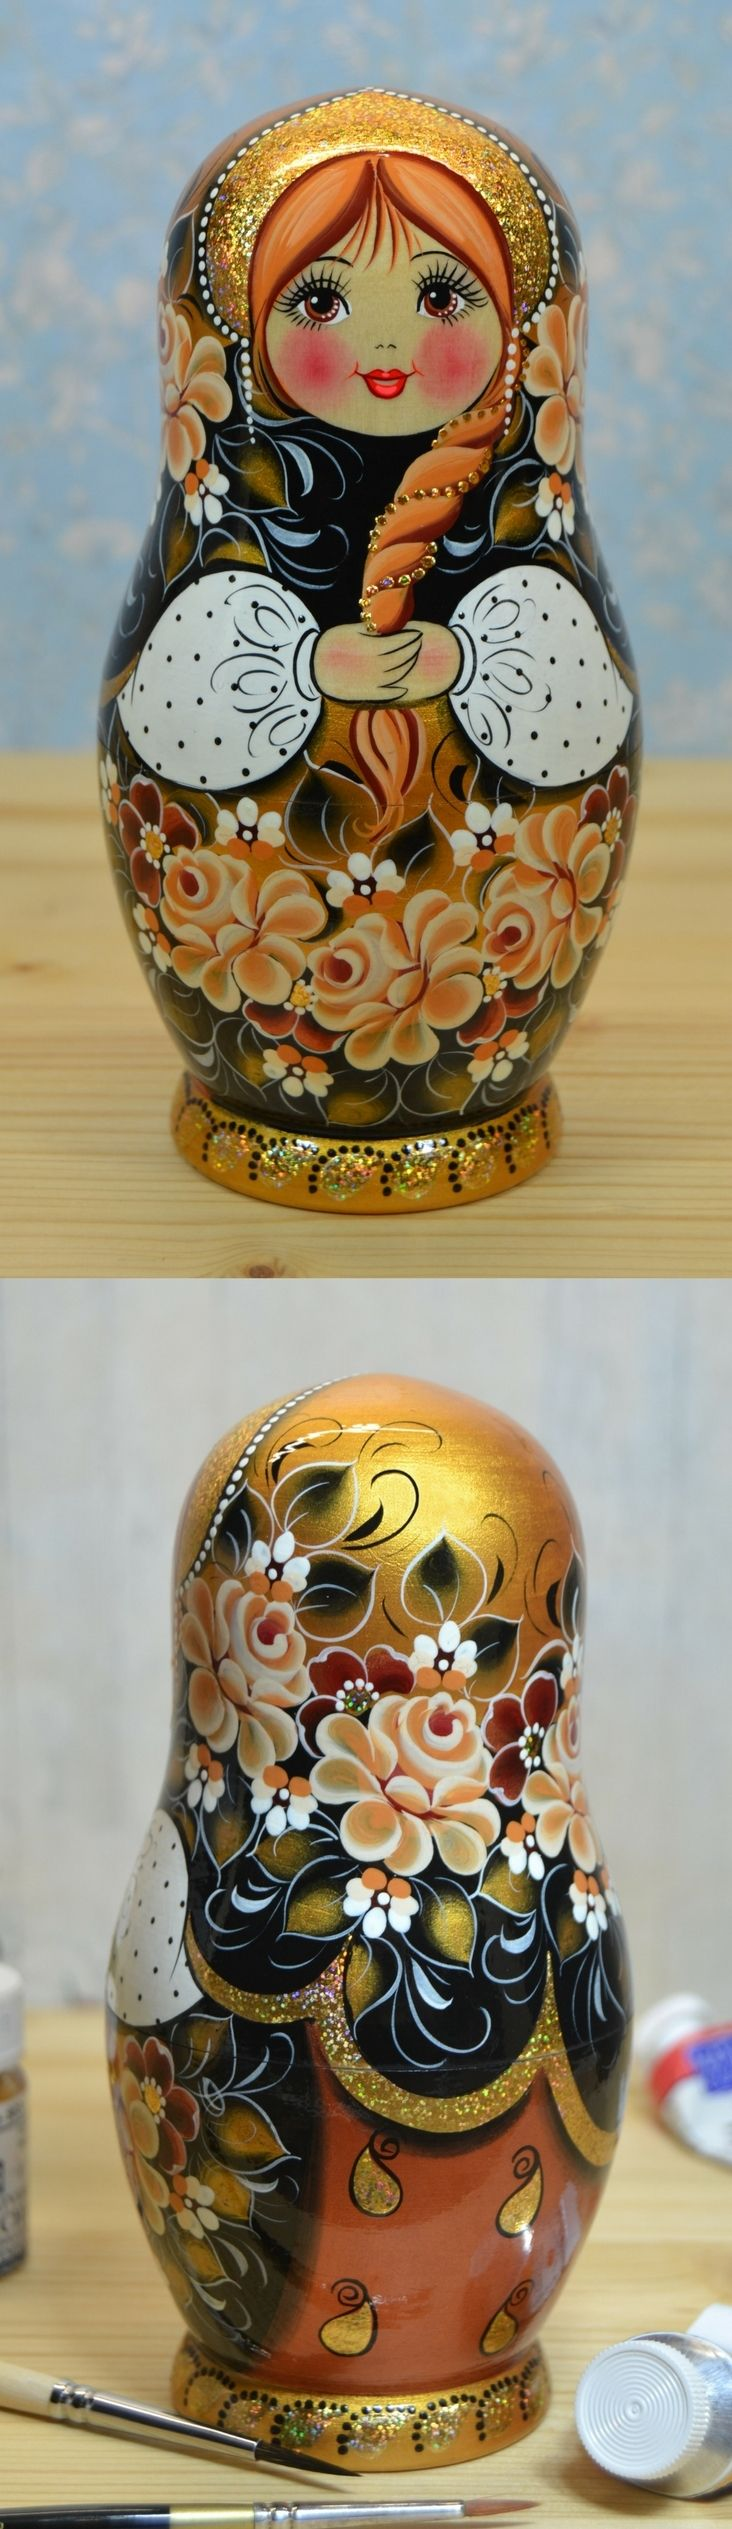 Russian nesting doll in black and gold decor, hand painted by artist Nadezhda Tihonovich. Find more lovely matryoshka dolls at: www.bestrussiandolls.etsy.com